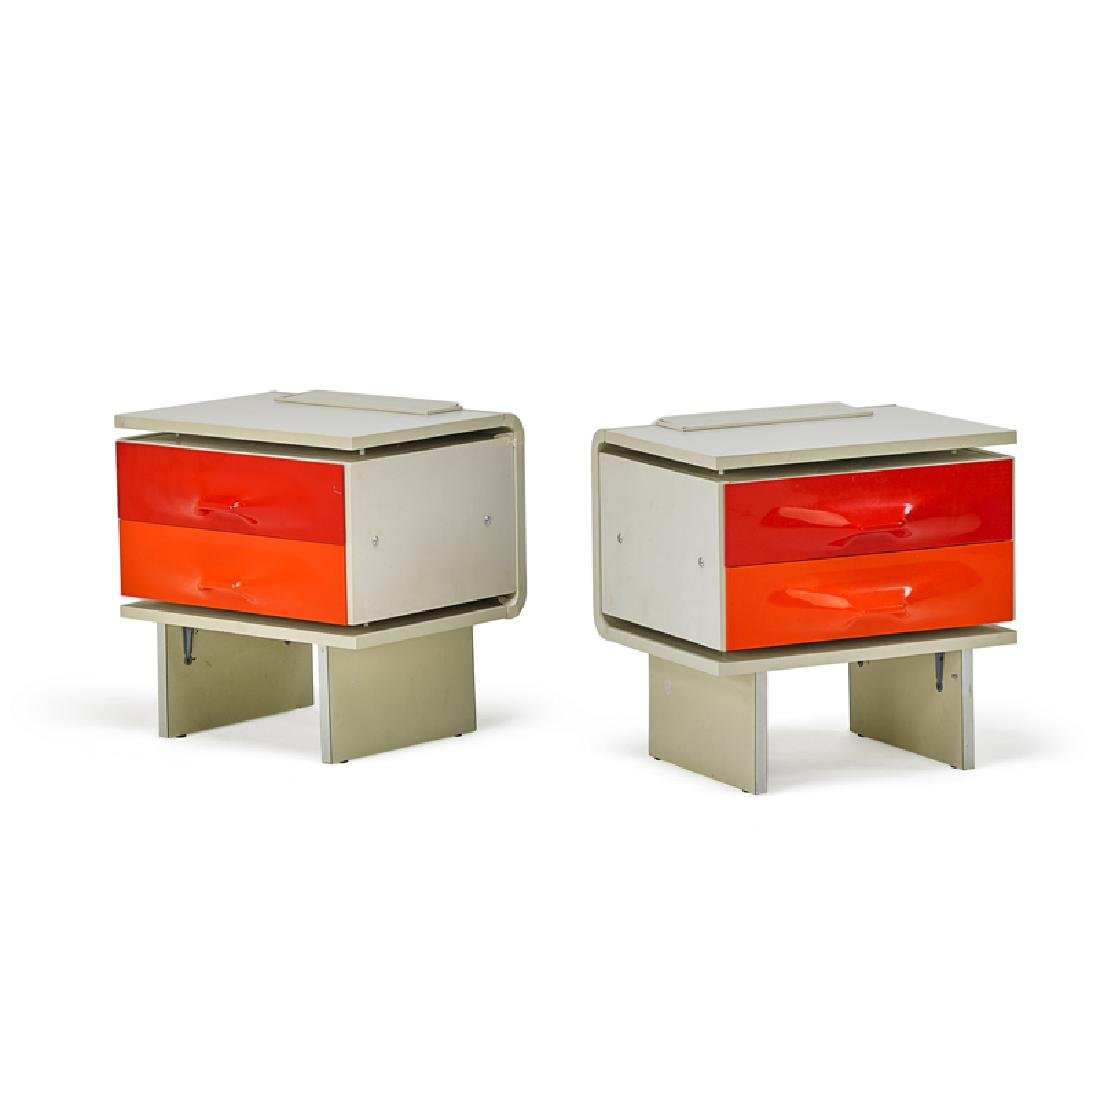 RAYMOND LOEWY Pair of nightstands